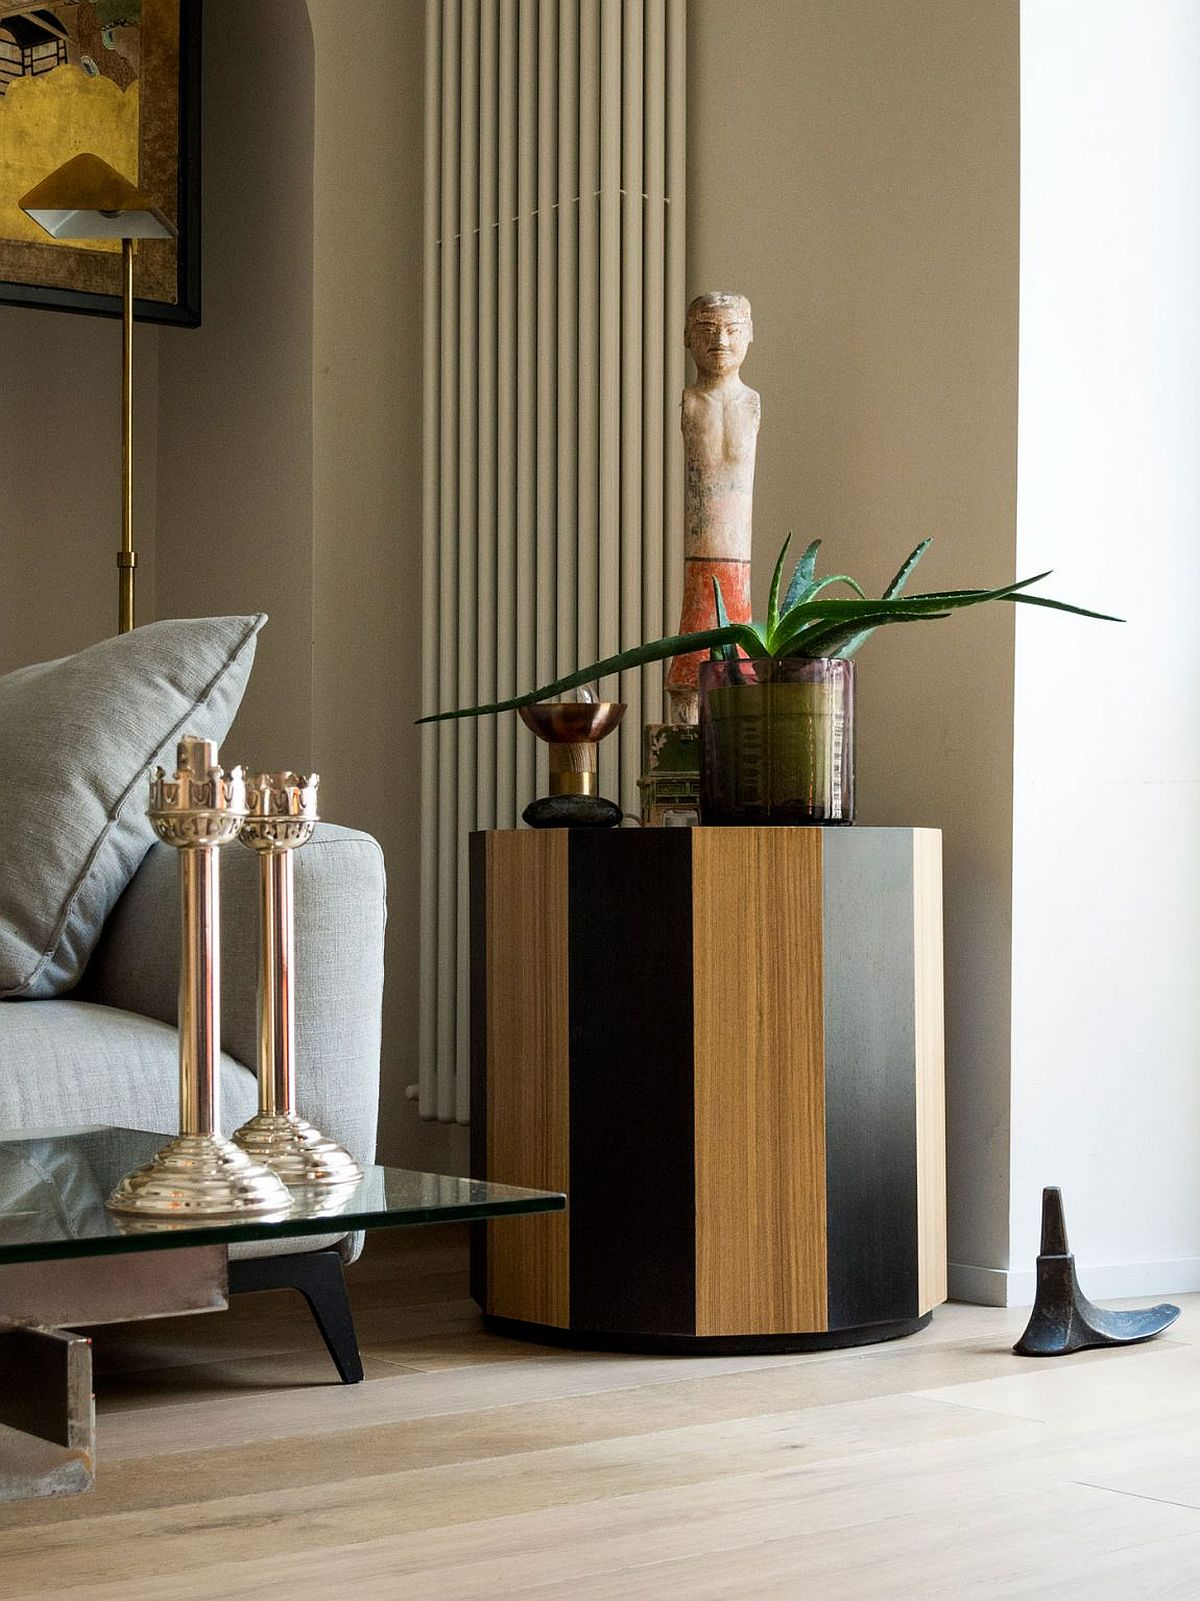 Decor in neutral hues, brright metallics and interesting accessories for the Mialn apartment